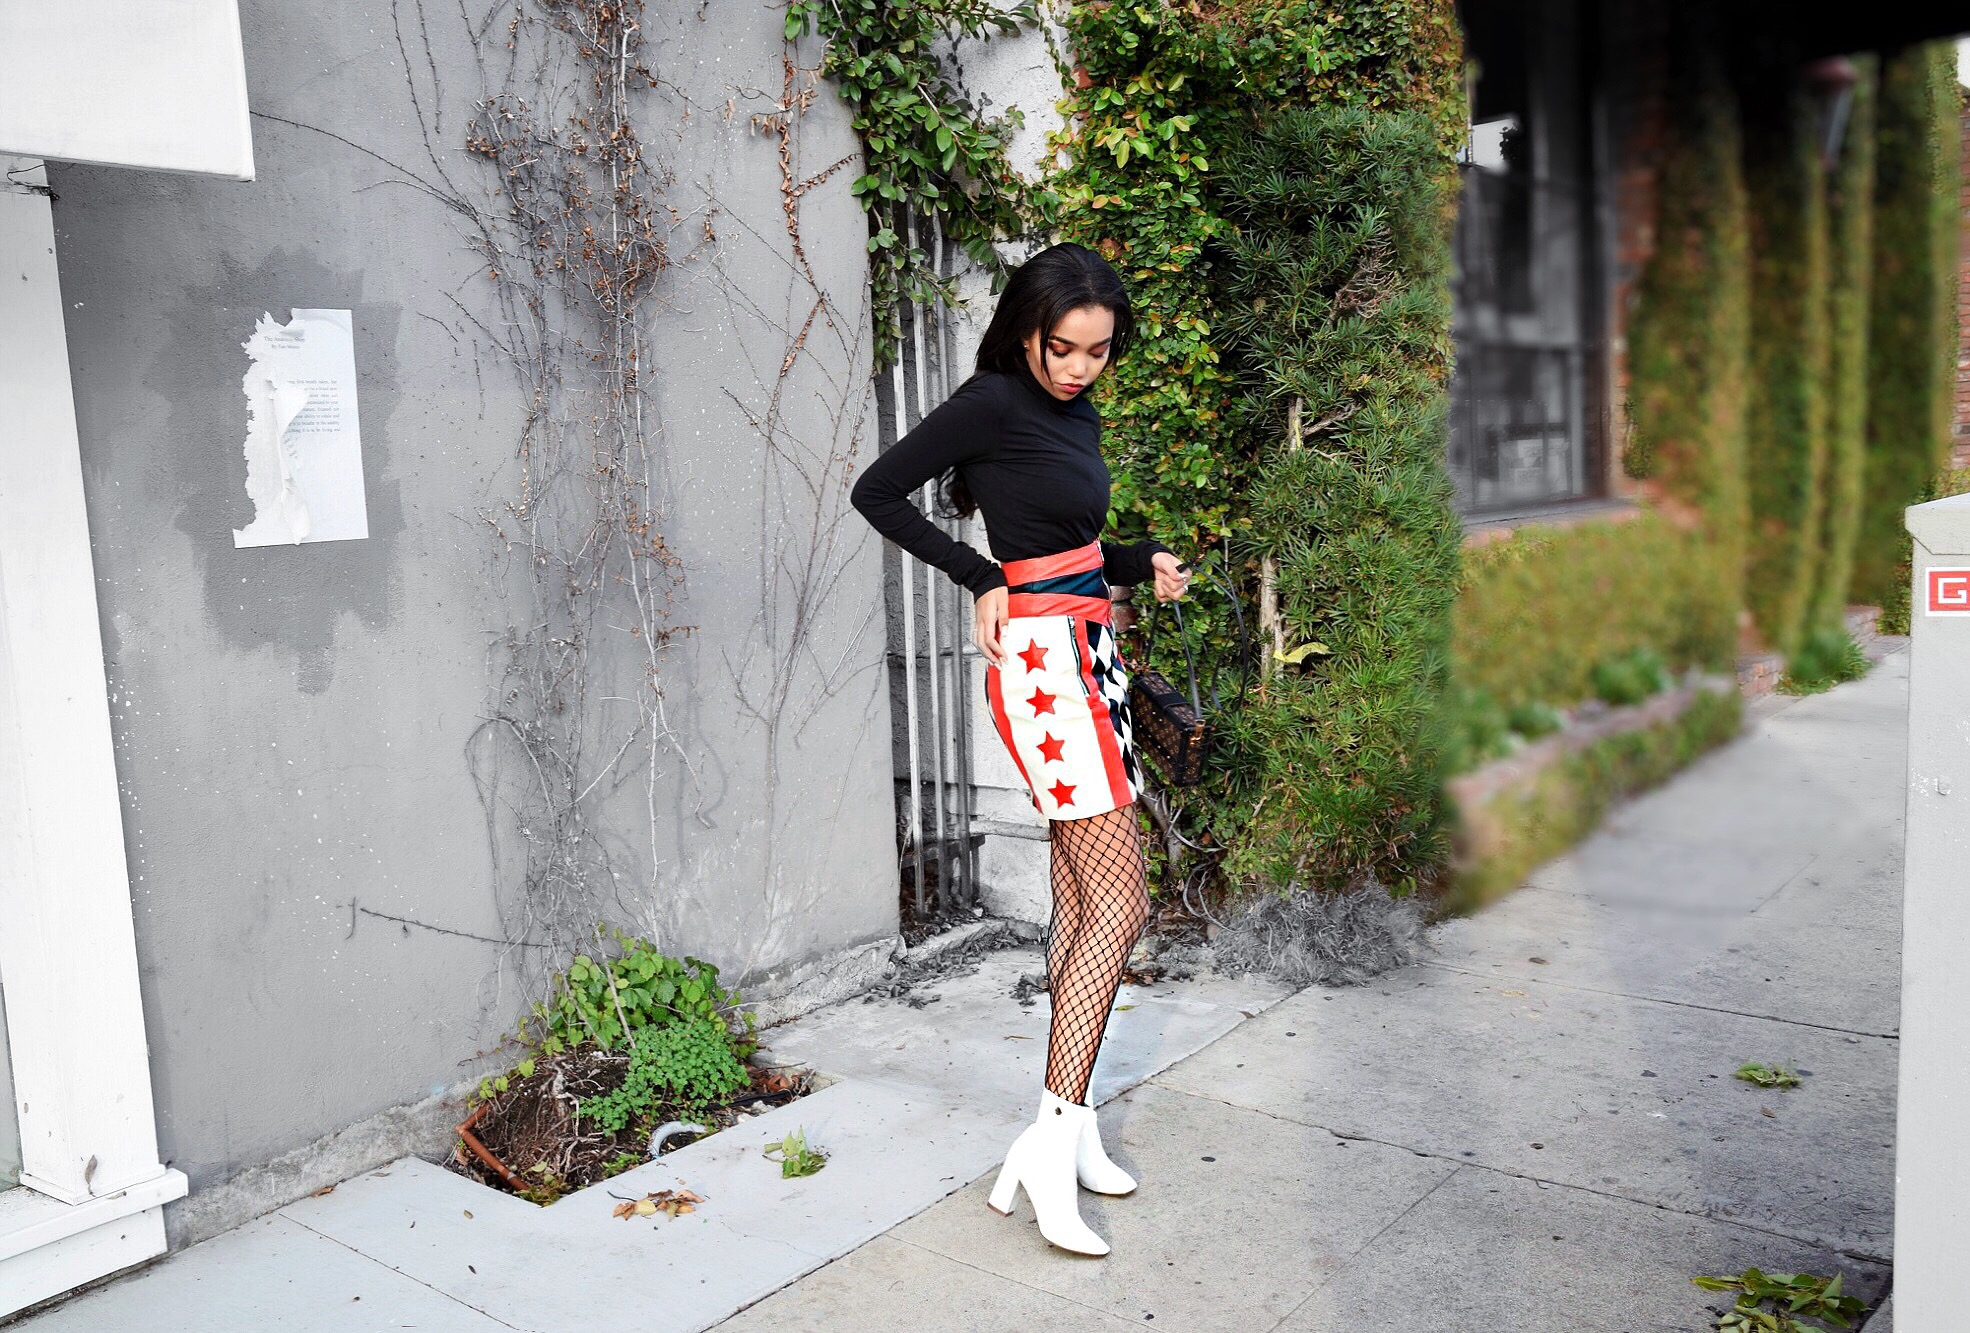 Start Your Engines // ASOS Checker Print Star Red & Black Leather Mini Skirt High Waisted // Black Theory Turtleneck // ASOS Fishnet Tights // Louis Vuitton Monogram Classic Petite Malle // Public Desire White Patent Leather Booties // Los Angeles Fashion Blogger Daphne Blunt // Winter + Spring Personal Street Style Look: To Style, With Love